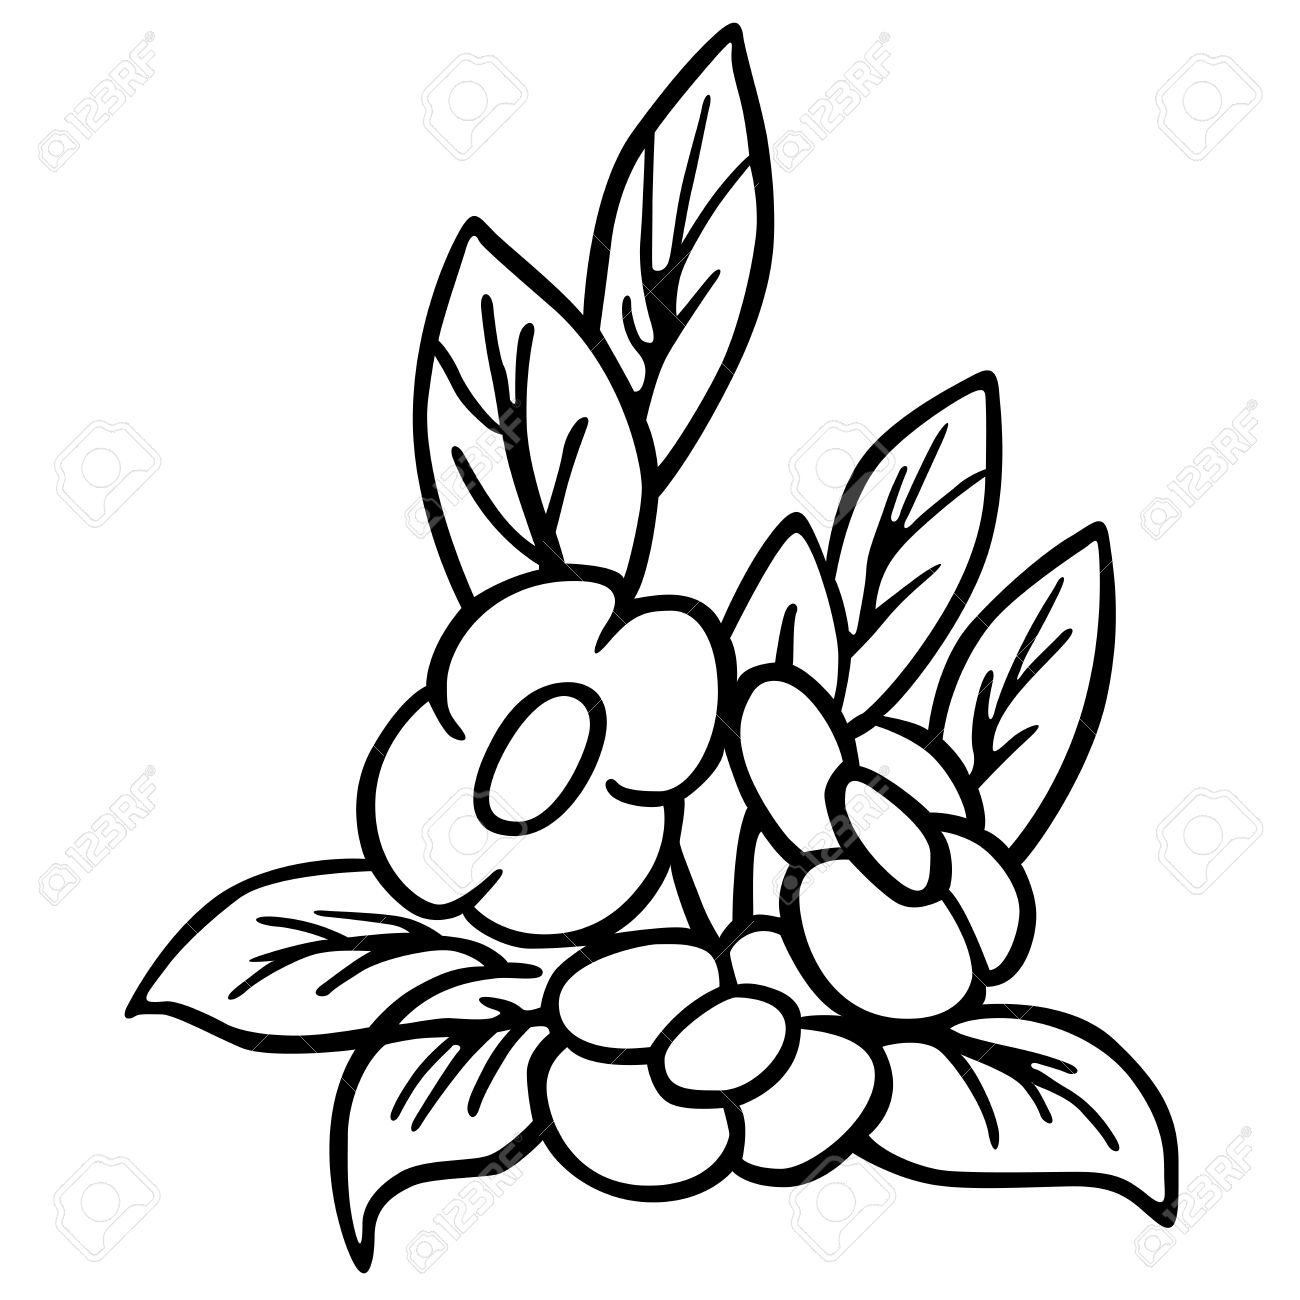 Flower Black And White Cartoon Wallpapers Gallery